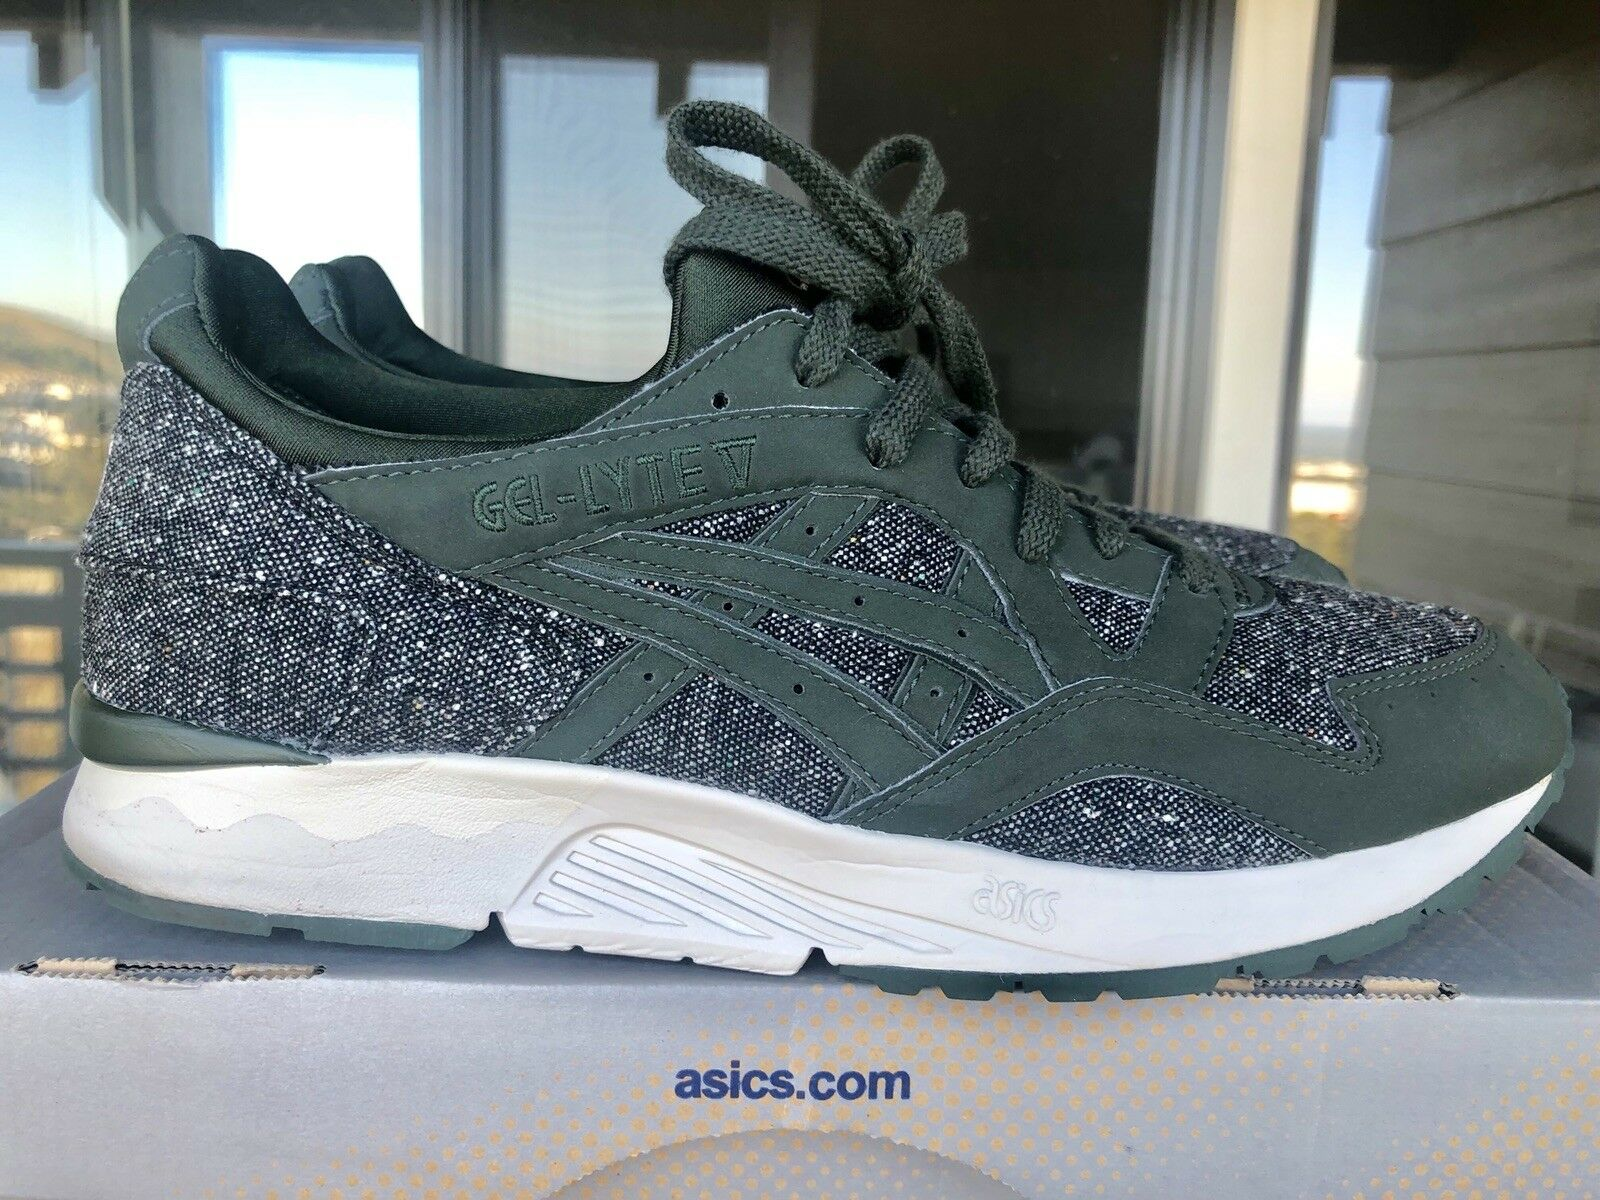 ASICS GEL LYTE V X SNEAKERSNSTUFF X ONITSUKA TIGER TAILOR PACK ARMY GREEN 10